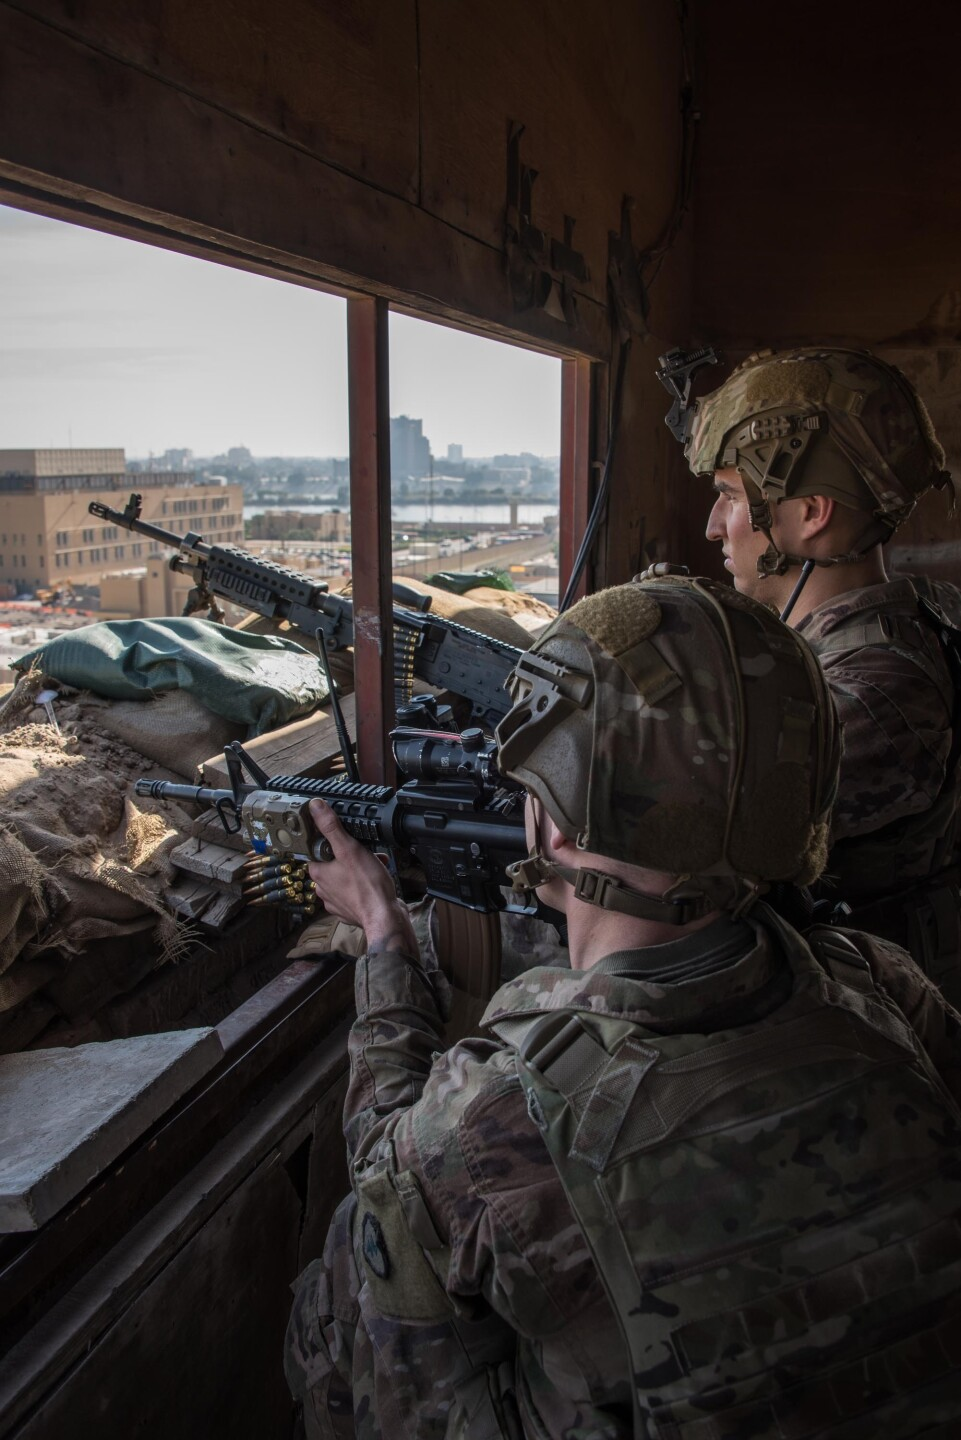 U.S. Army soldiers protect the U.S. Embassy Compound, Baghdad